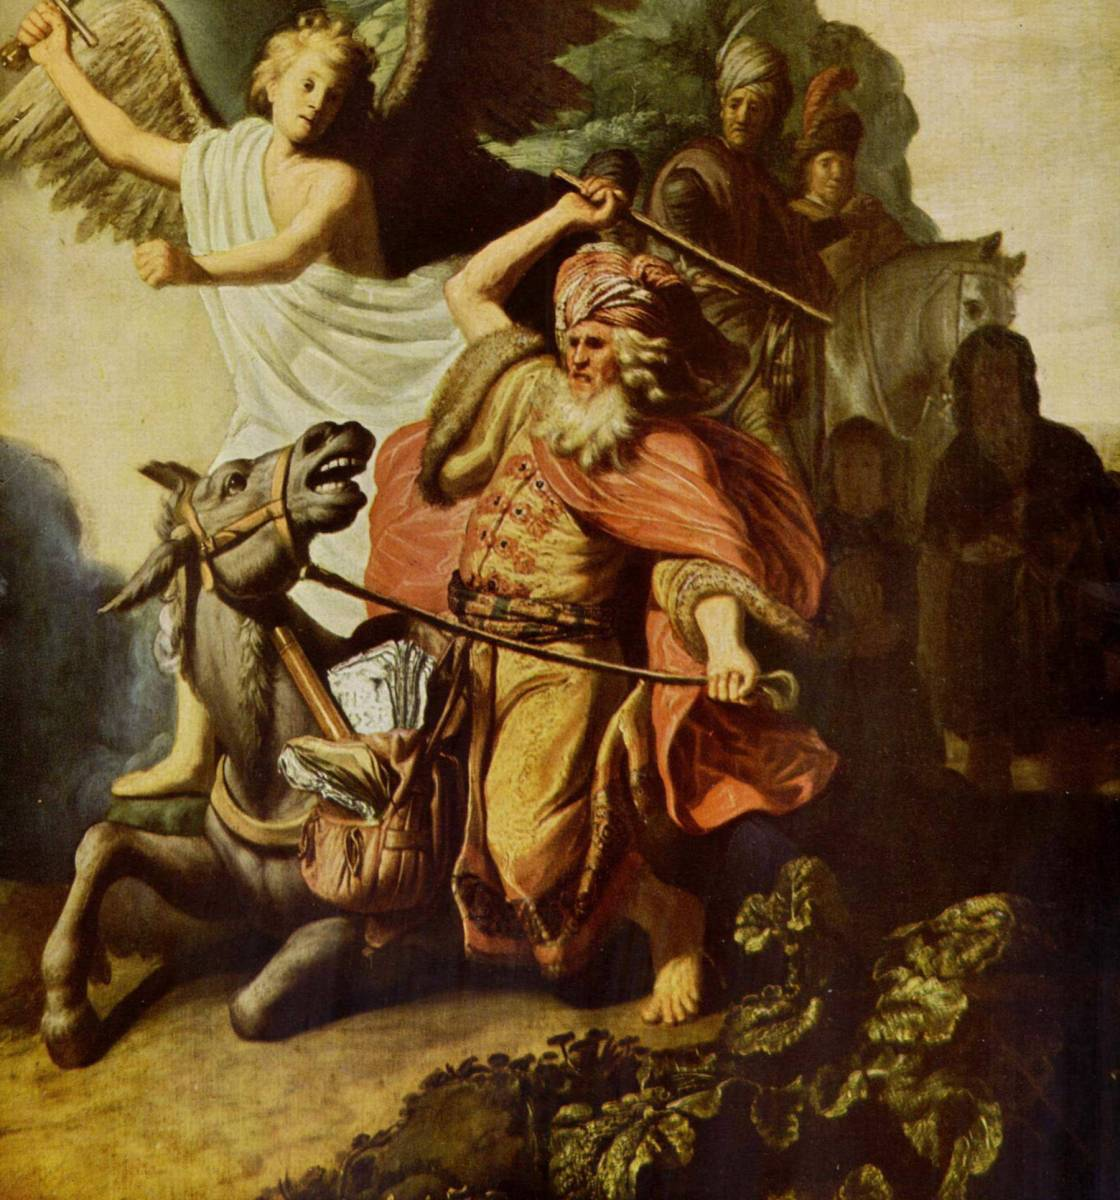 Balaam, the Ass, and the Irony of the LORD